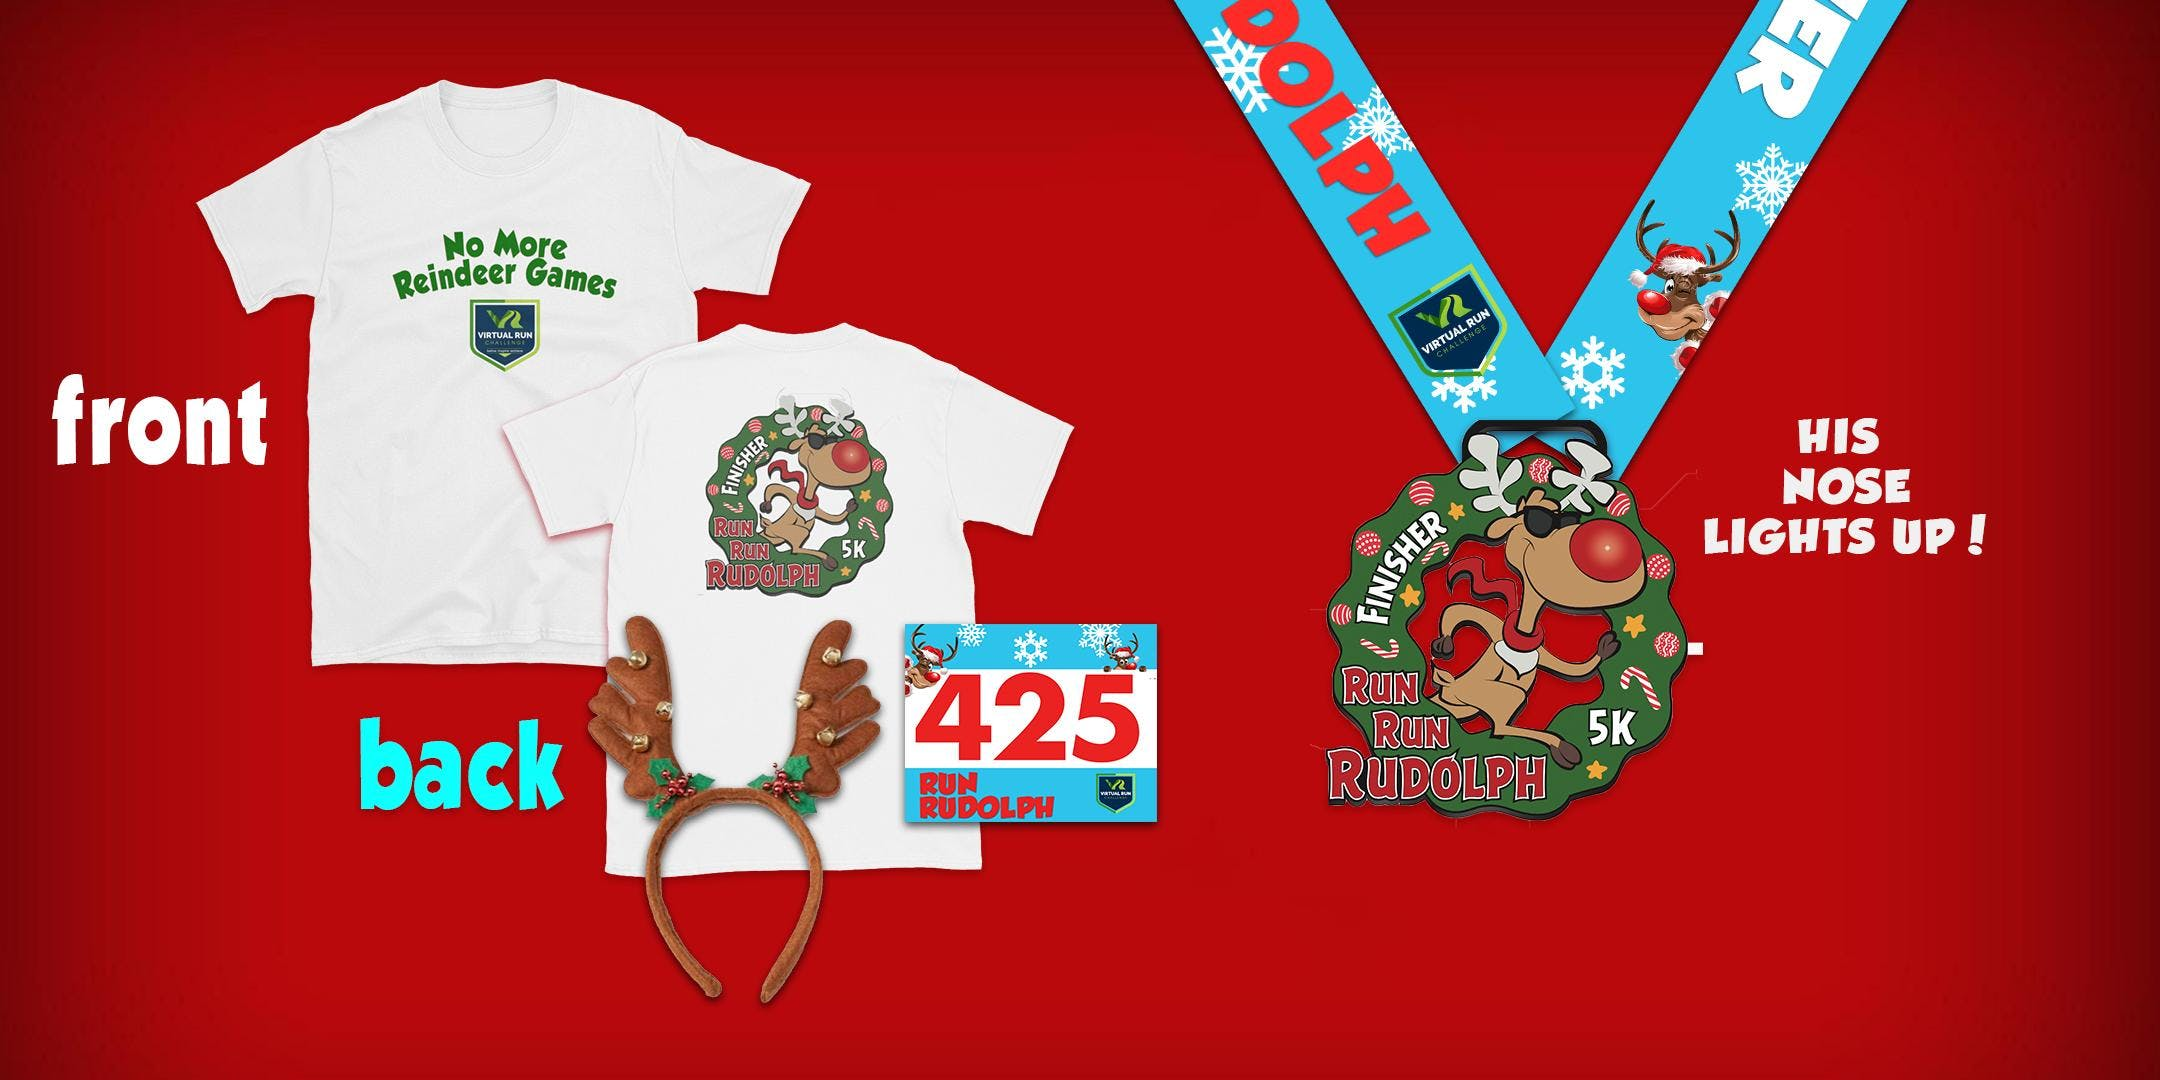 Run Run Rudolph Virtual 5k Run Walk - Scottsdale